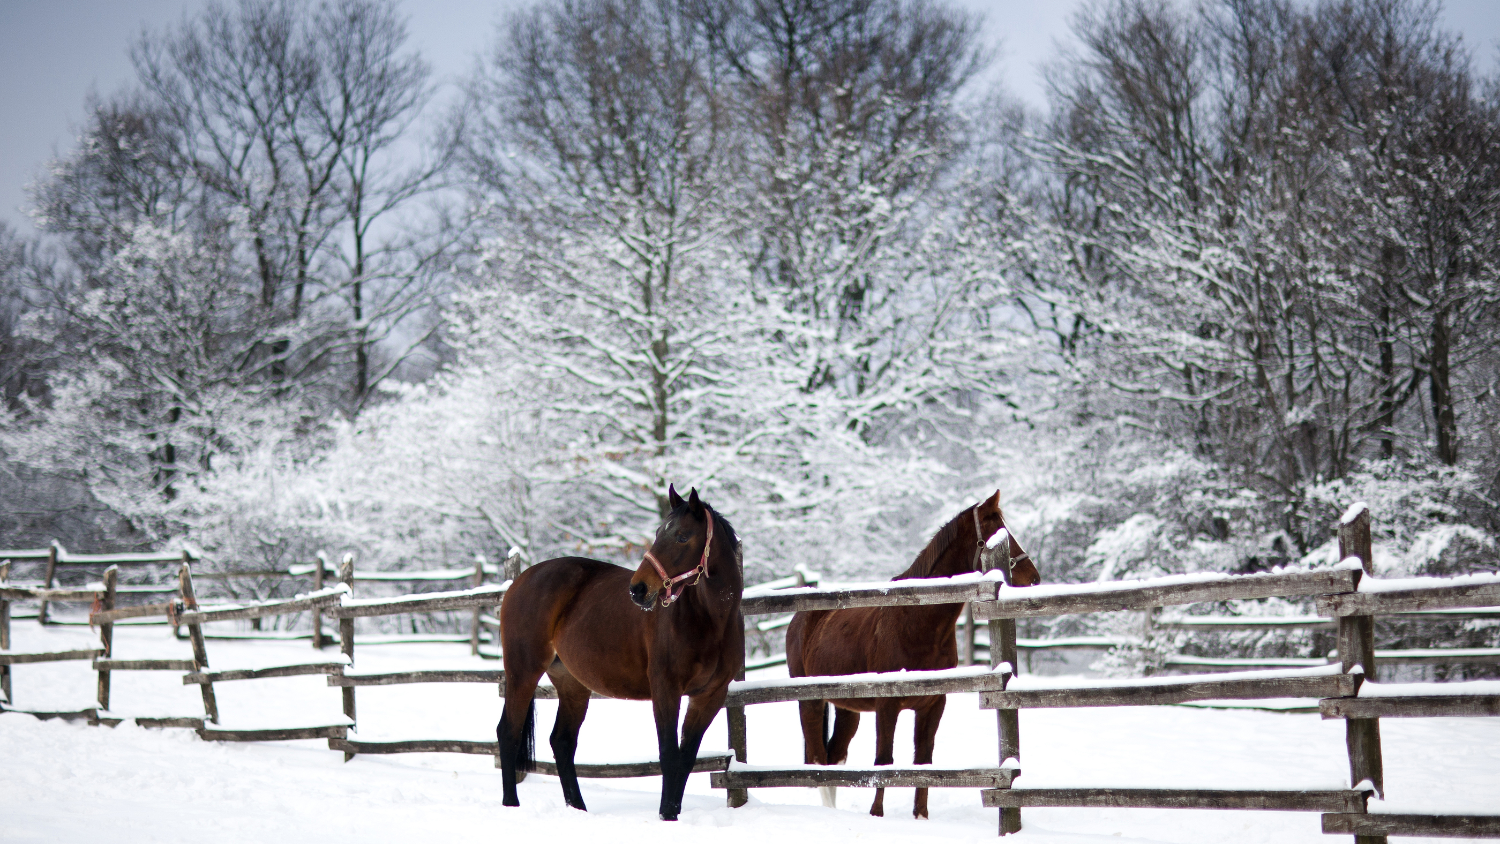 Chestnut Brown Horses In A Cold Winter P